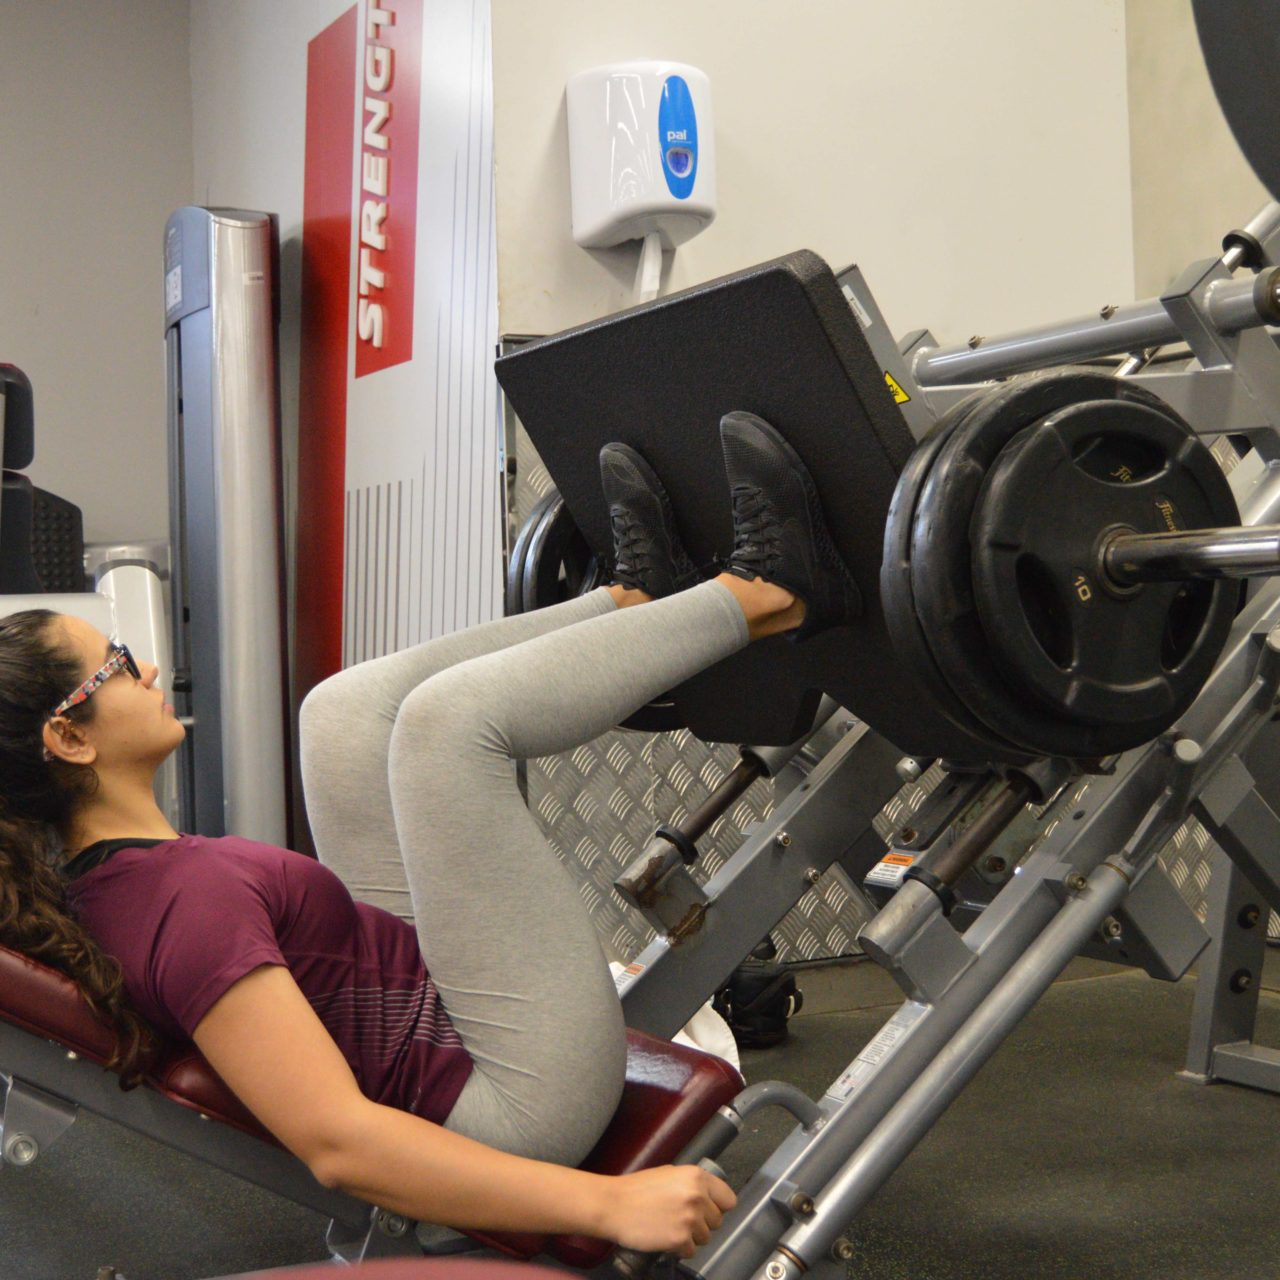 'Ladies, you won't get bulky from lifting weights'